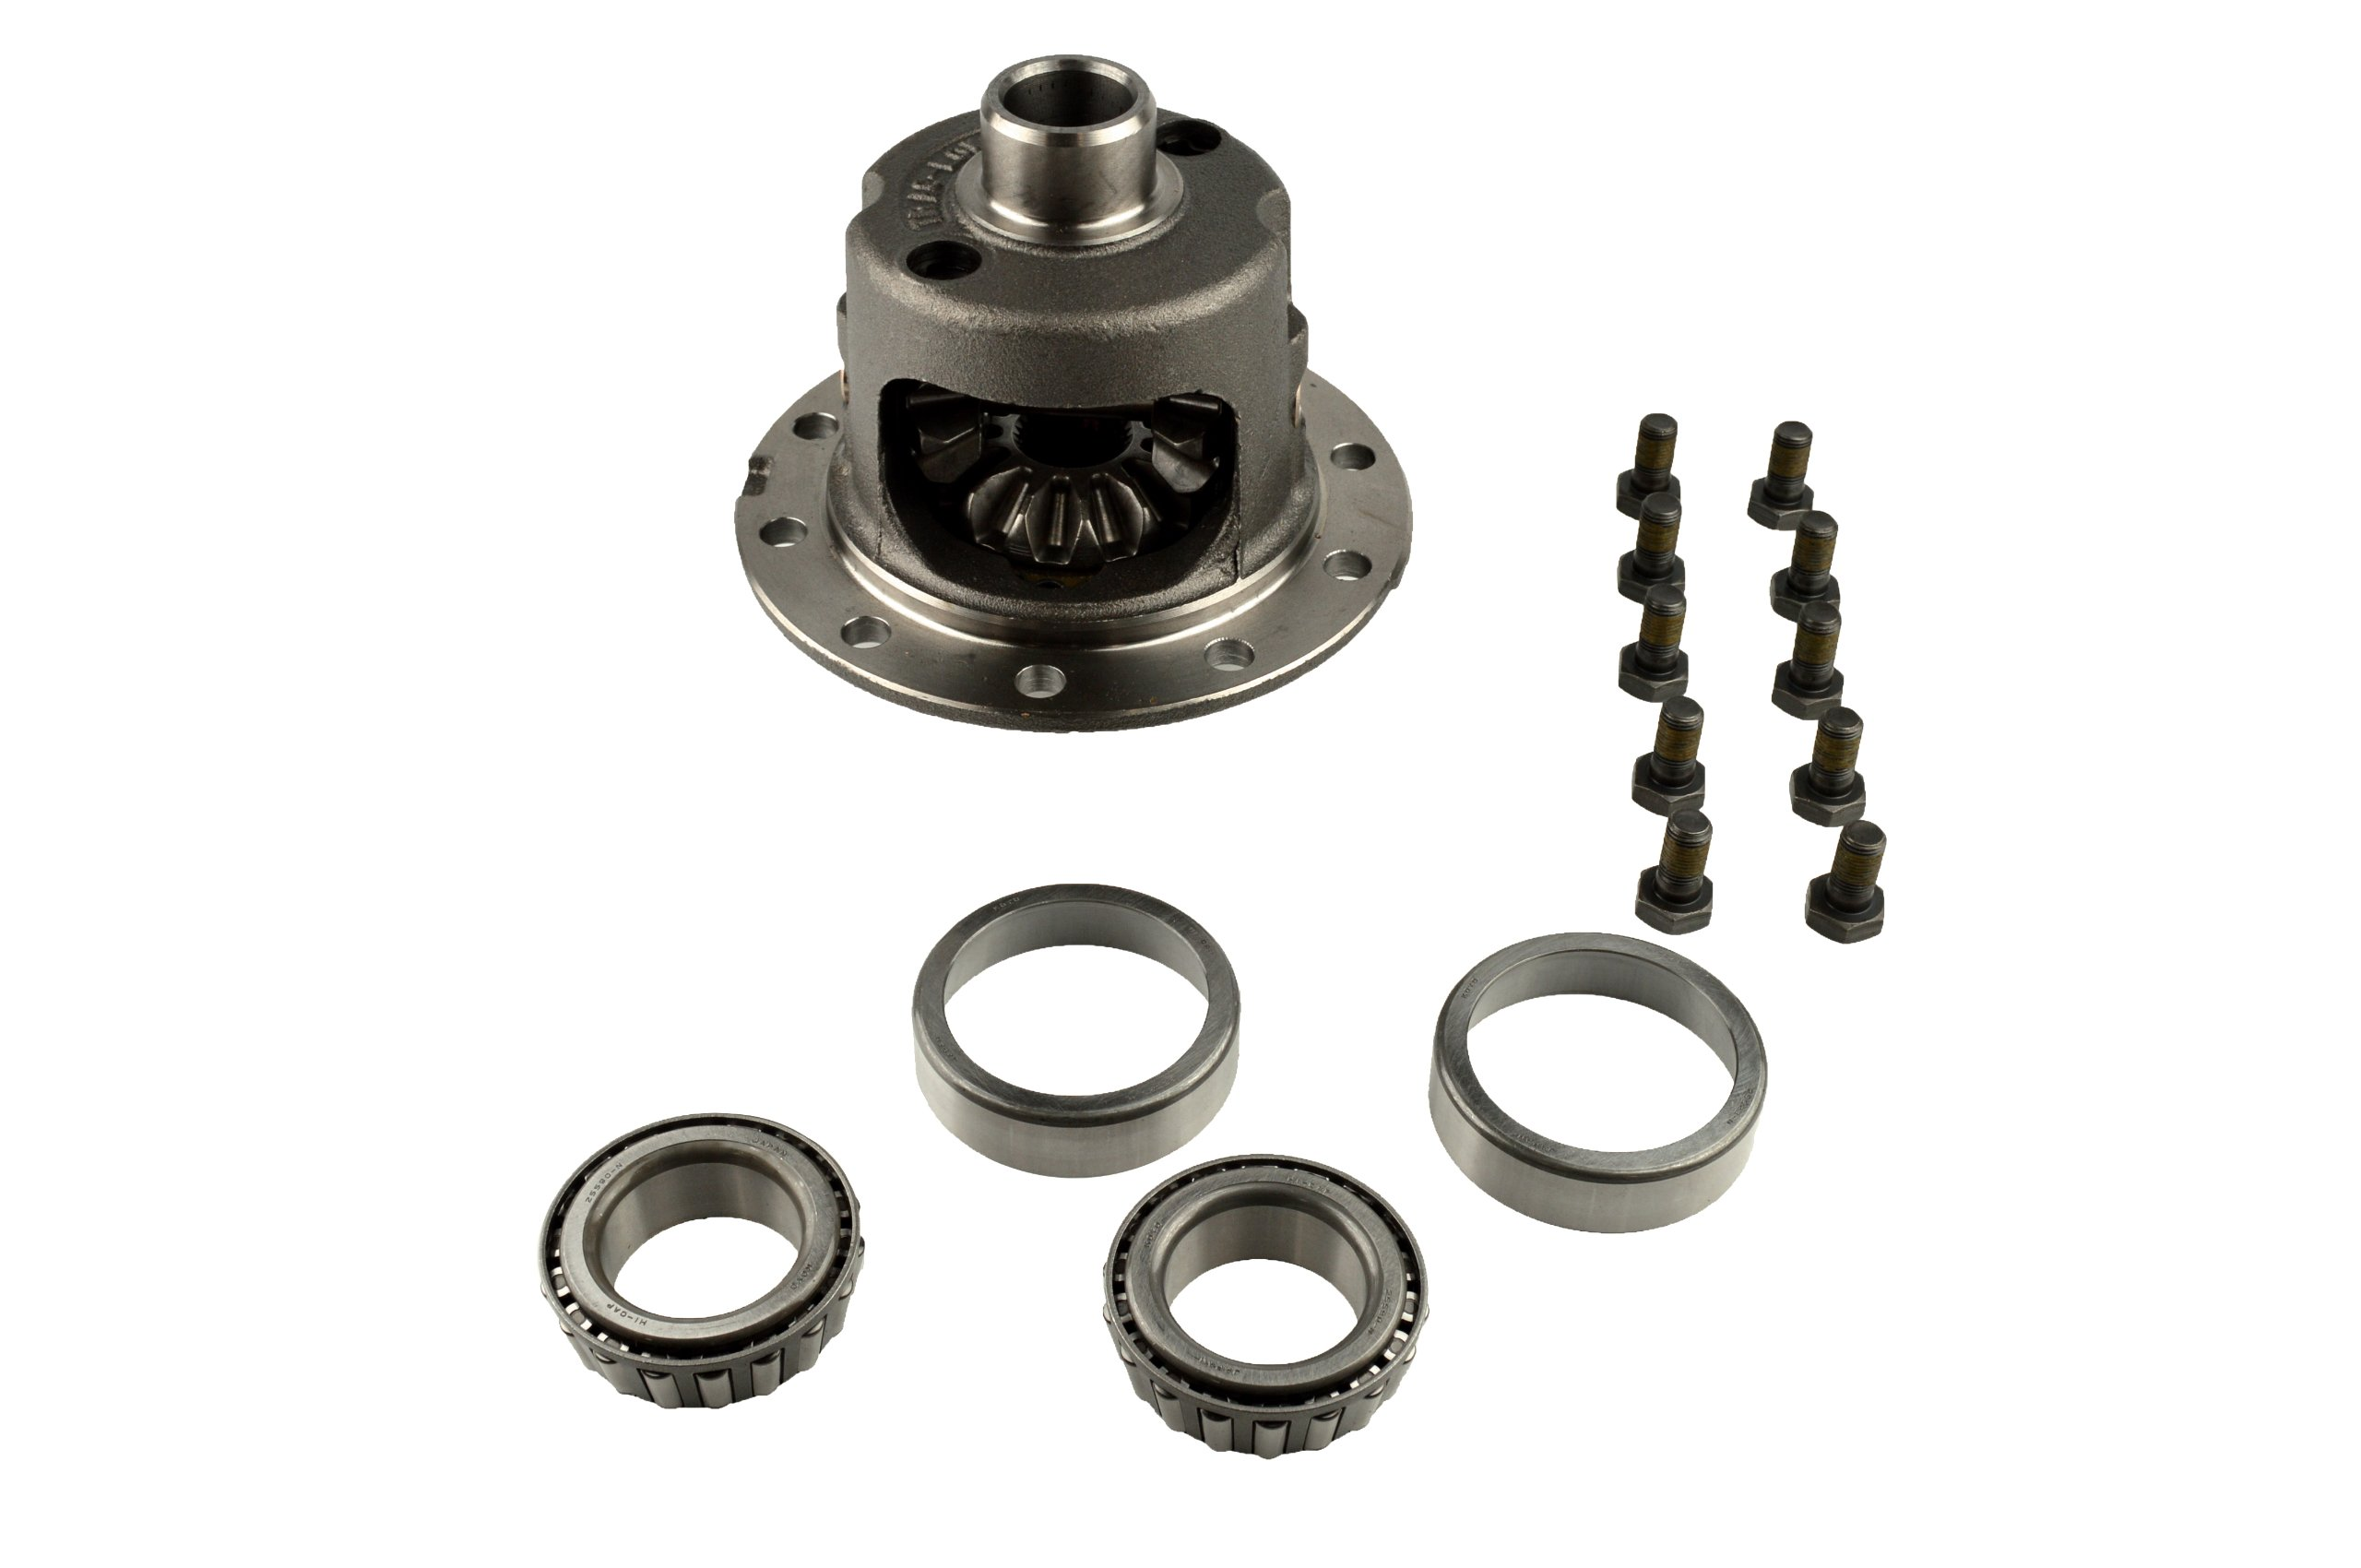 Spicer 2008571 Differential Case Assembly Kit